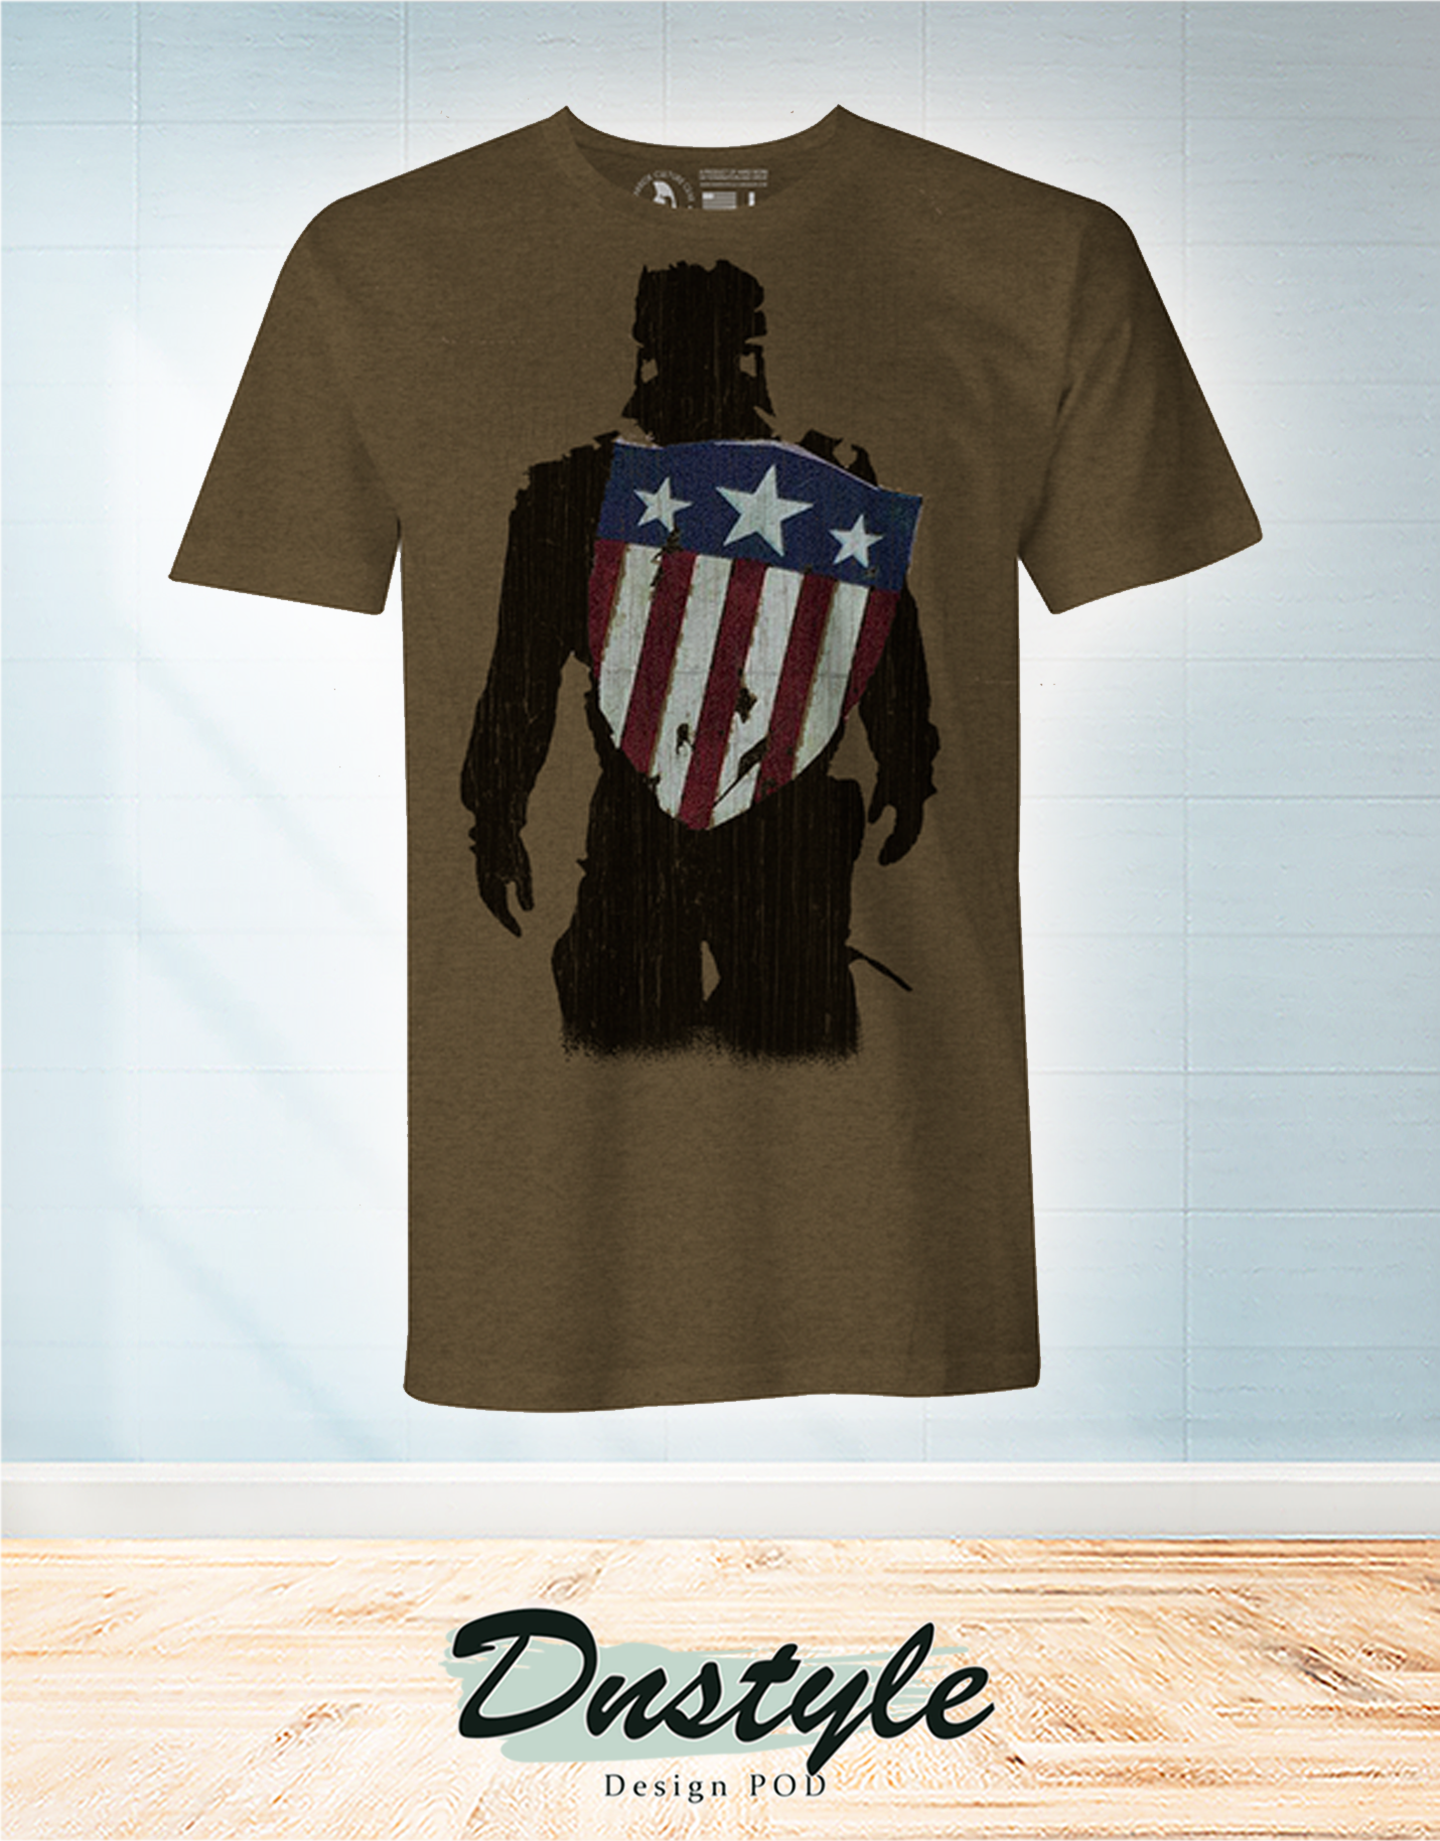 Captain America for as long as I can remember I just wanted to do what was right t-shirt